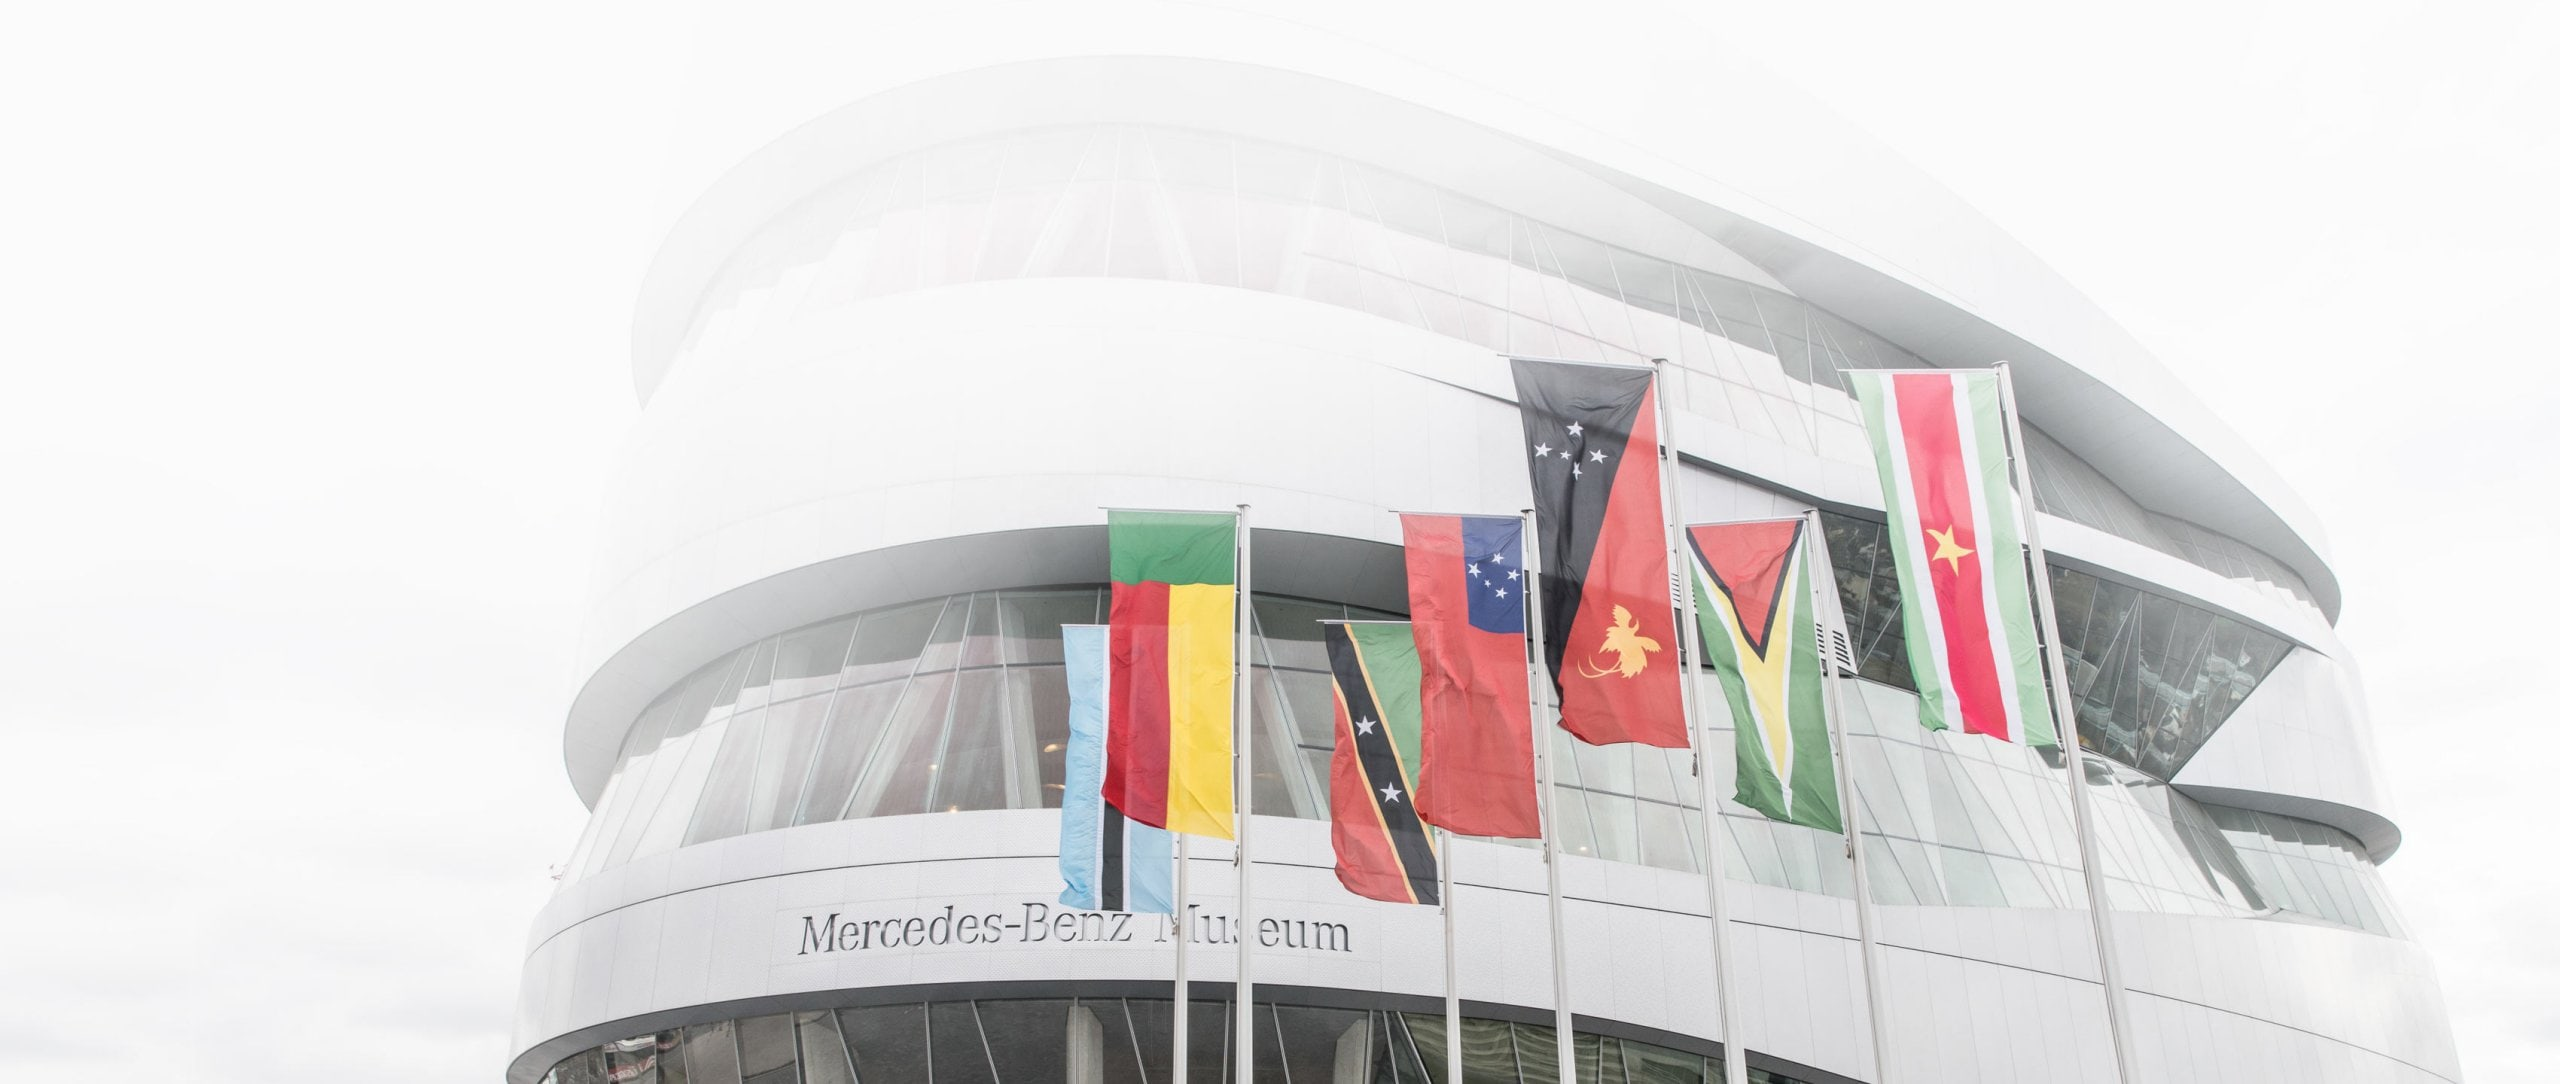 Since February 2017 the Mercedes-Benz Museum had been running a campaign specifically aimed at visitors from the seven countries which were not yet represented in the official visitor statistics.